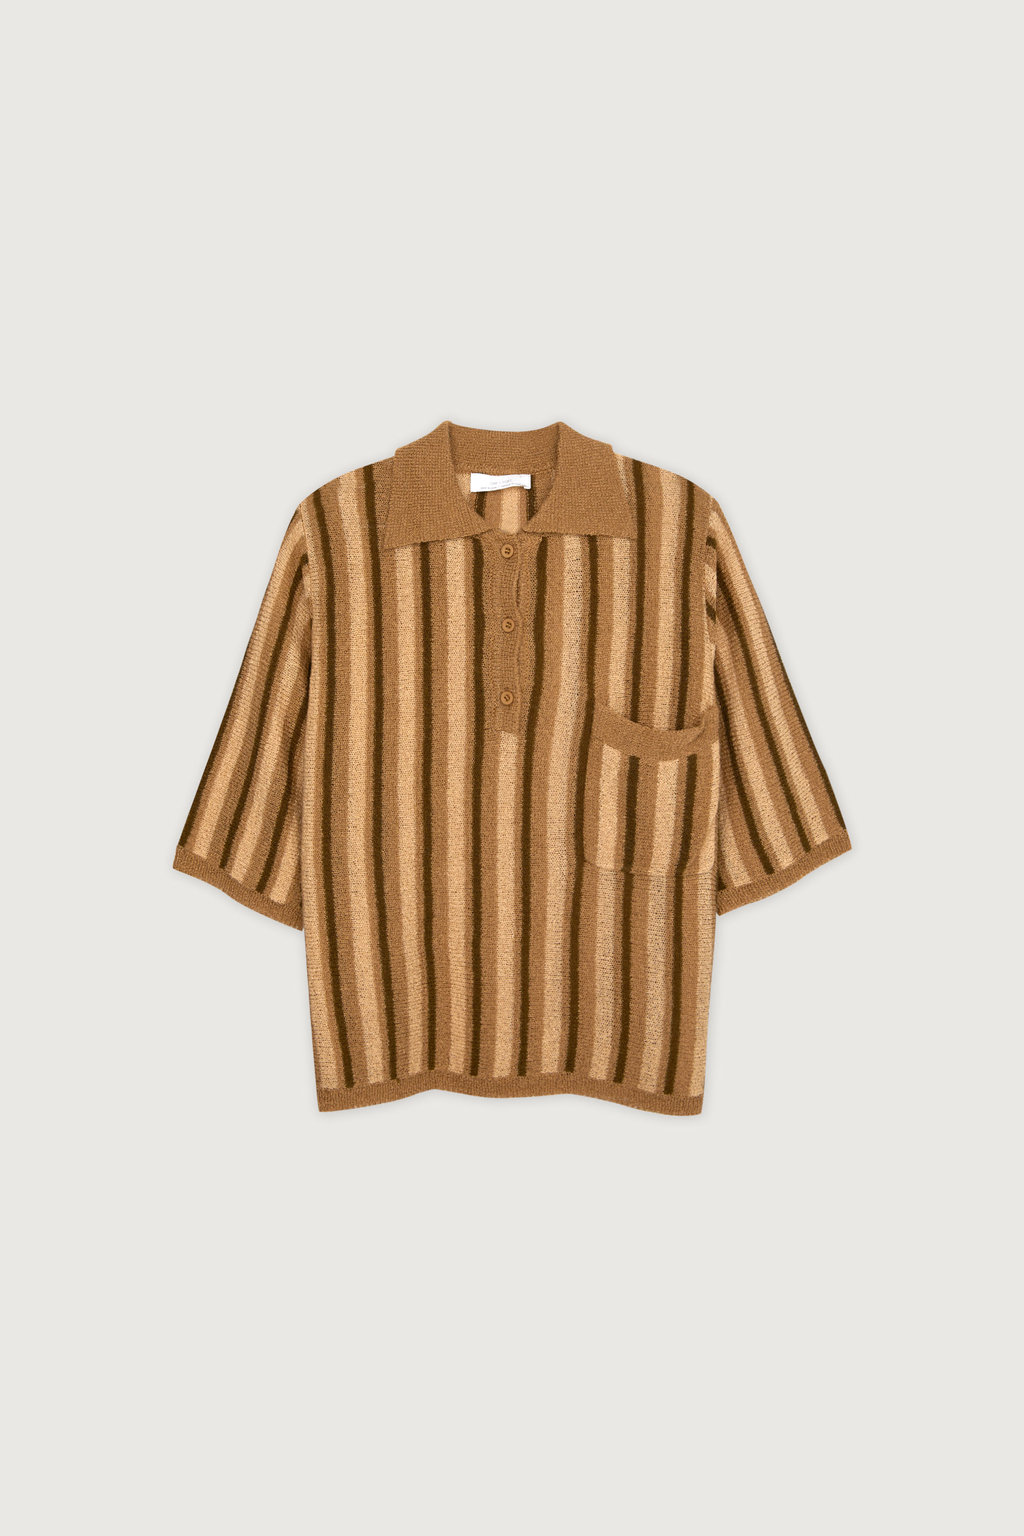 Sweater 3187 Beige Stripe 6